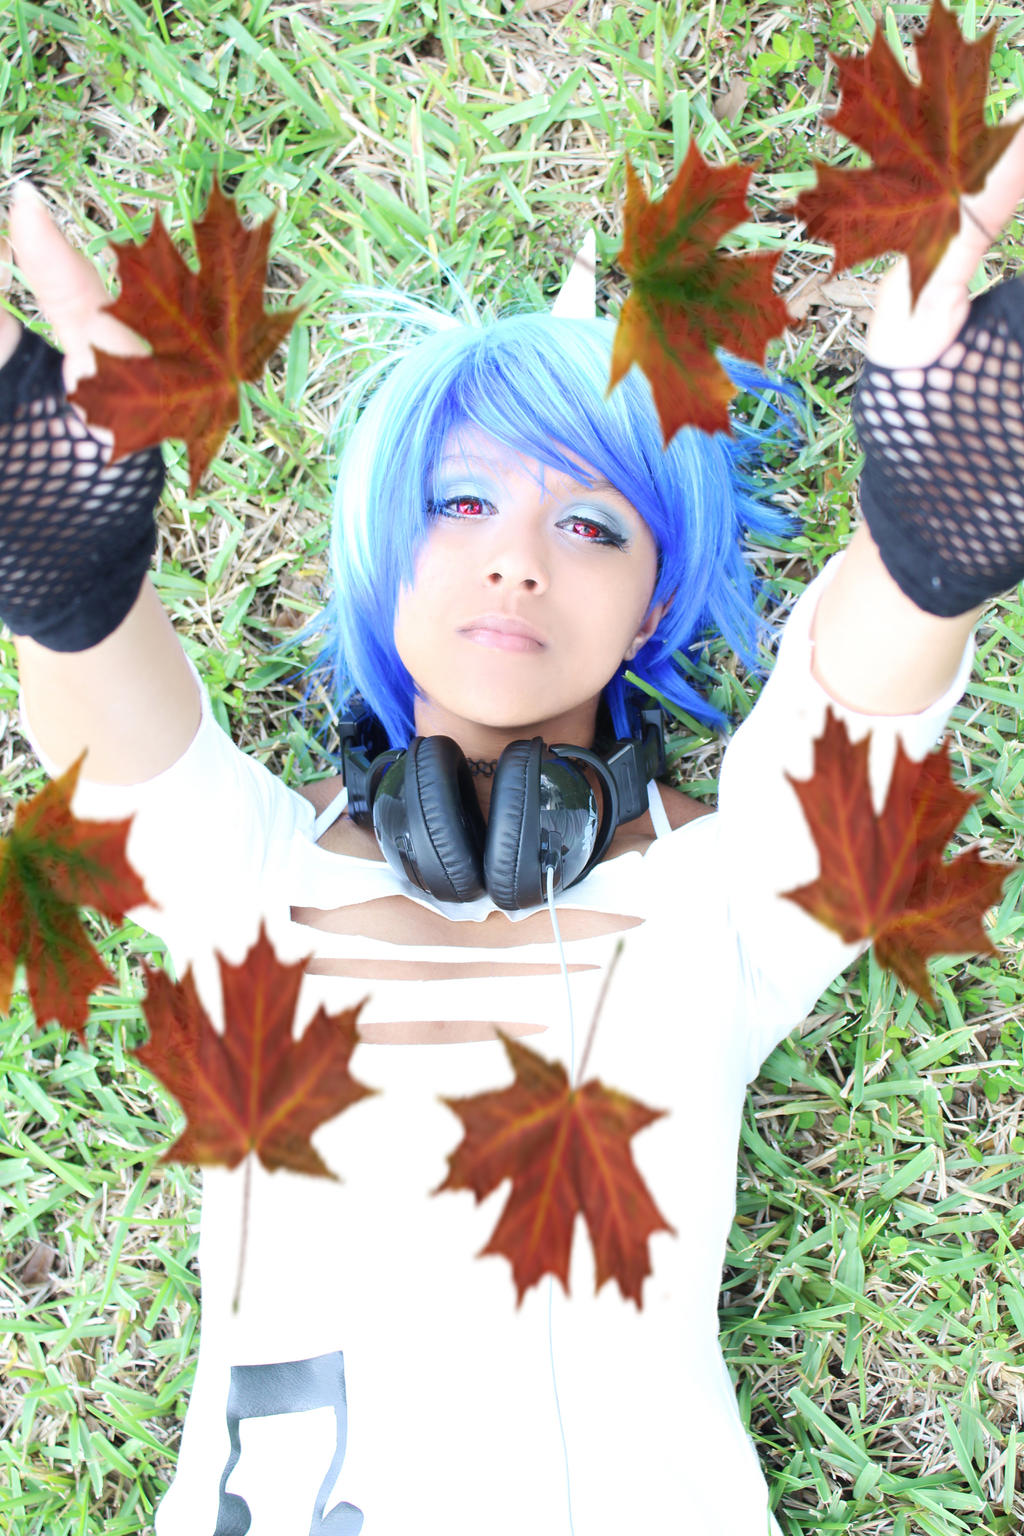 MlP Vinyl Scratch Cosplay: Falling Leaves by Awesome-Vivi